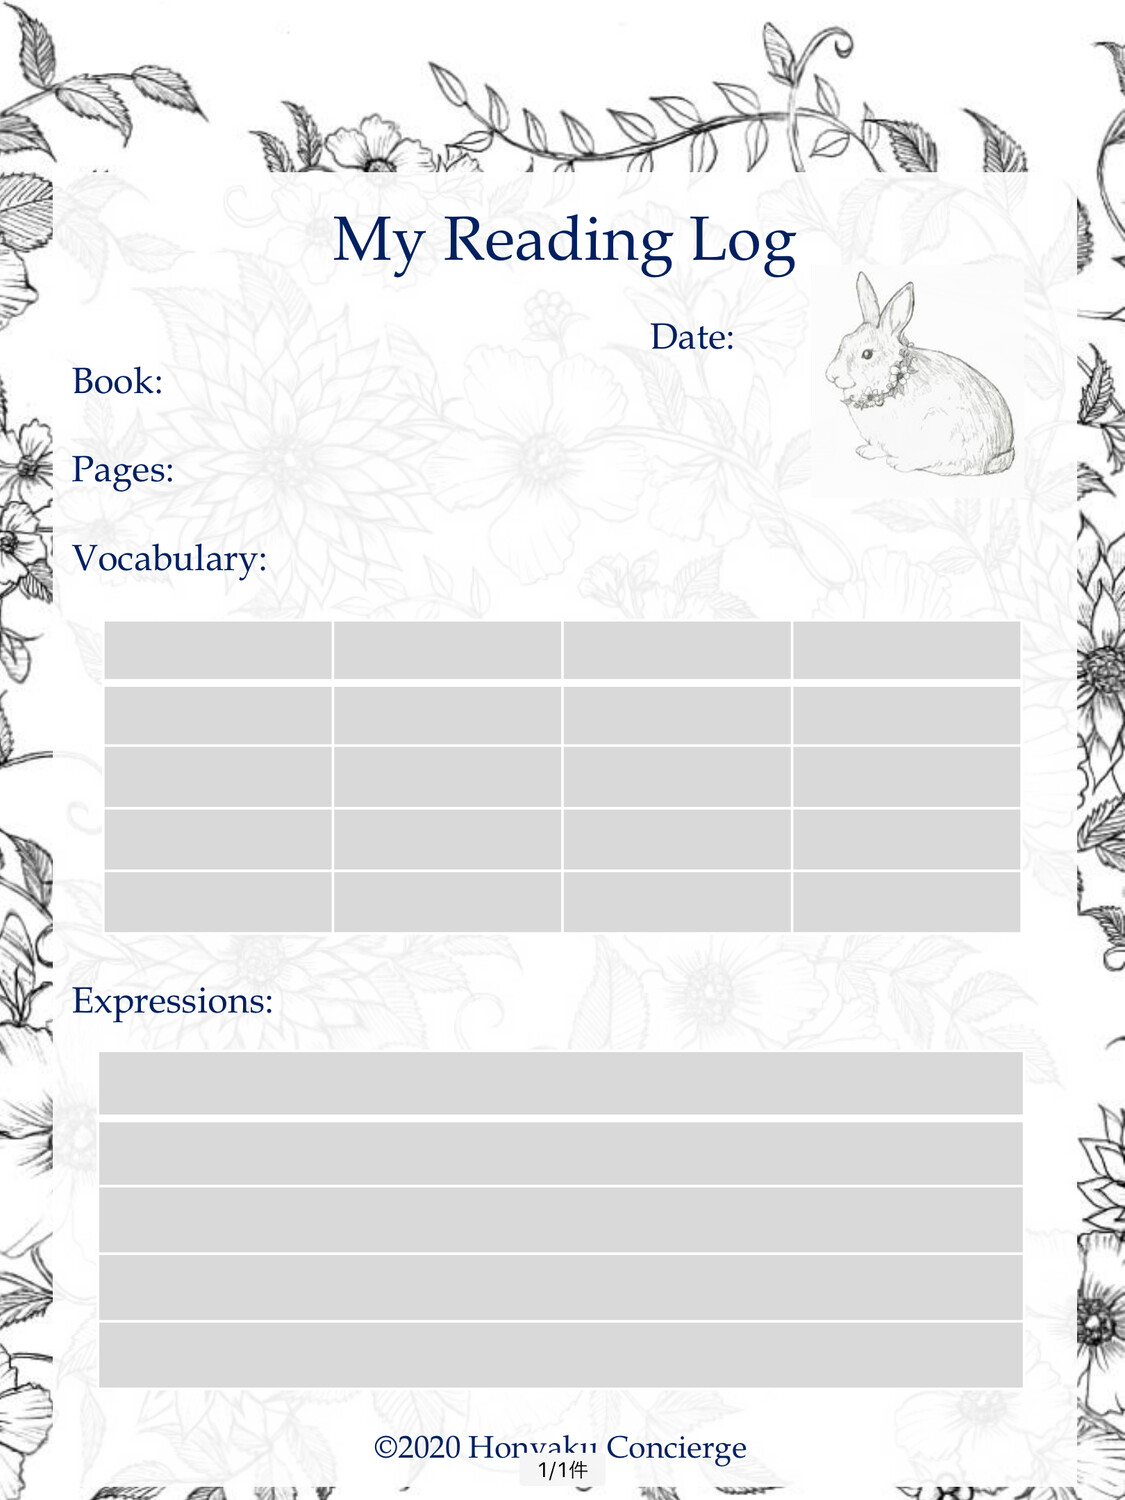 My Reading Log (For Books)